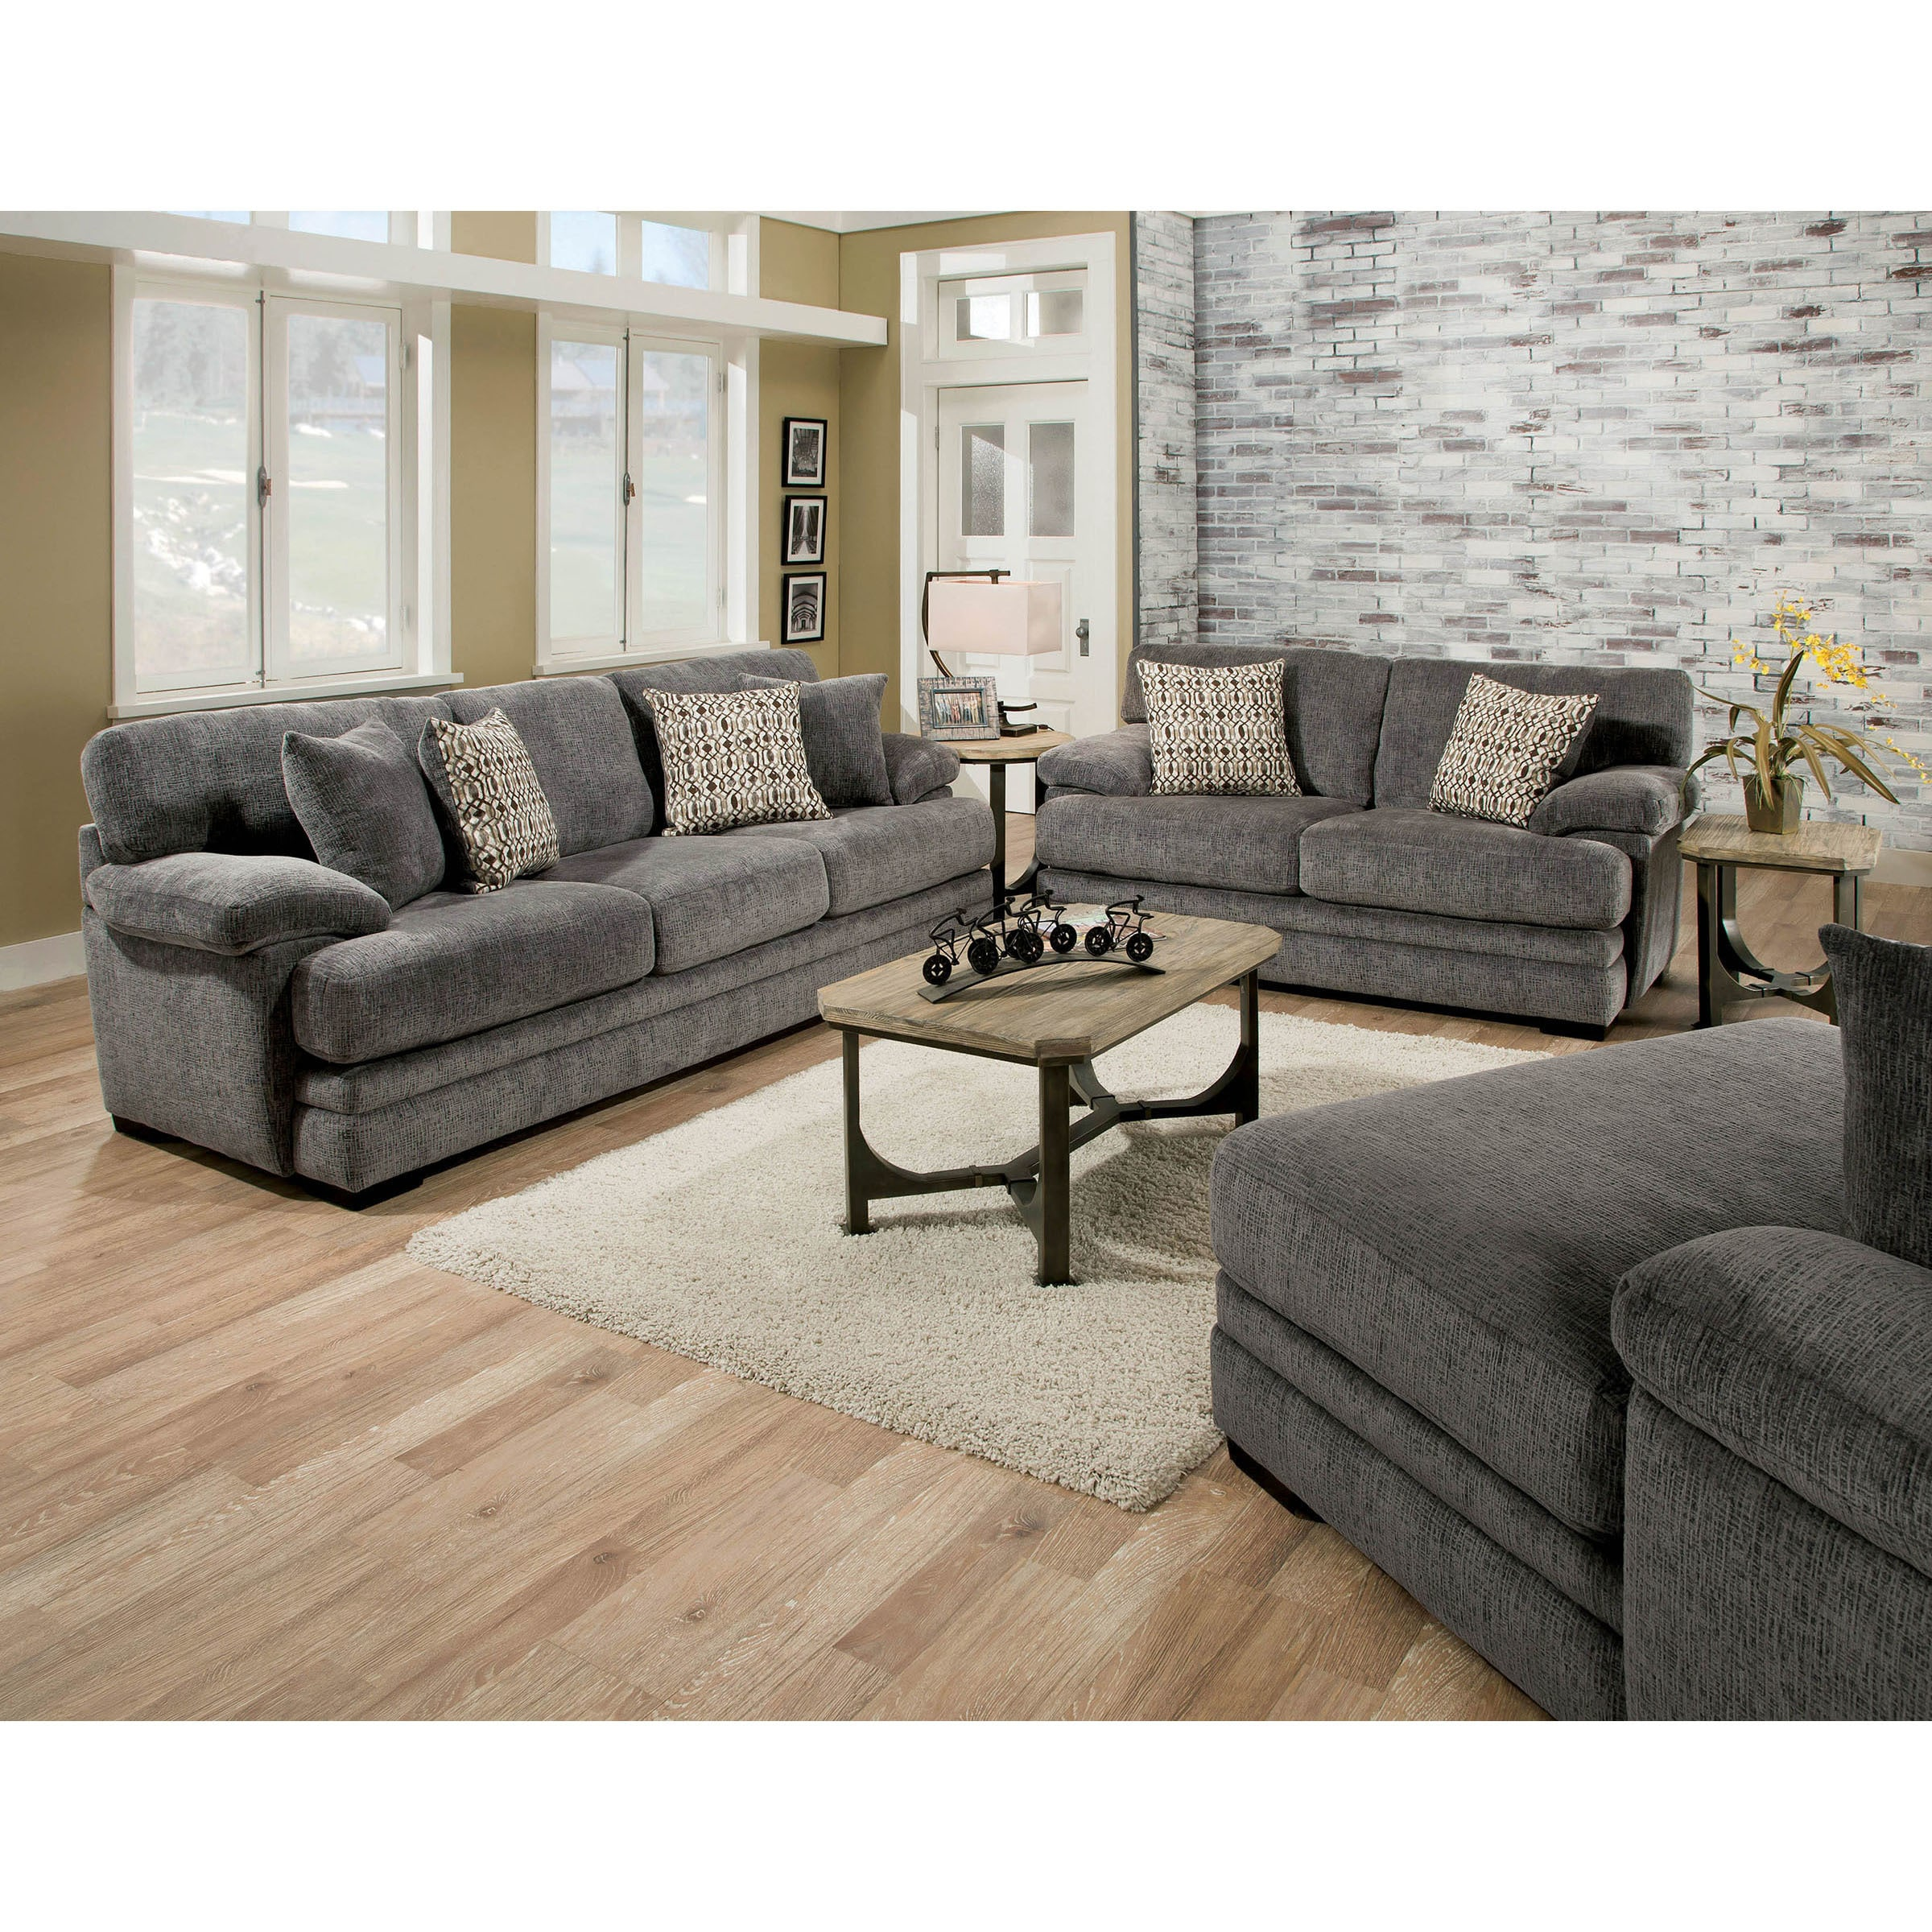 Shop Furniture Of America Eloisa Transitional Pillow Top Plush Sofa   On  Sale   Free Shipping Today   Overstock.com   19893728